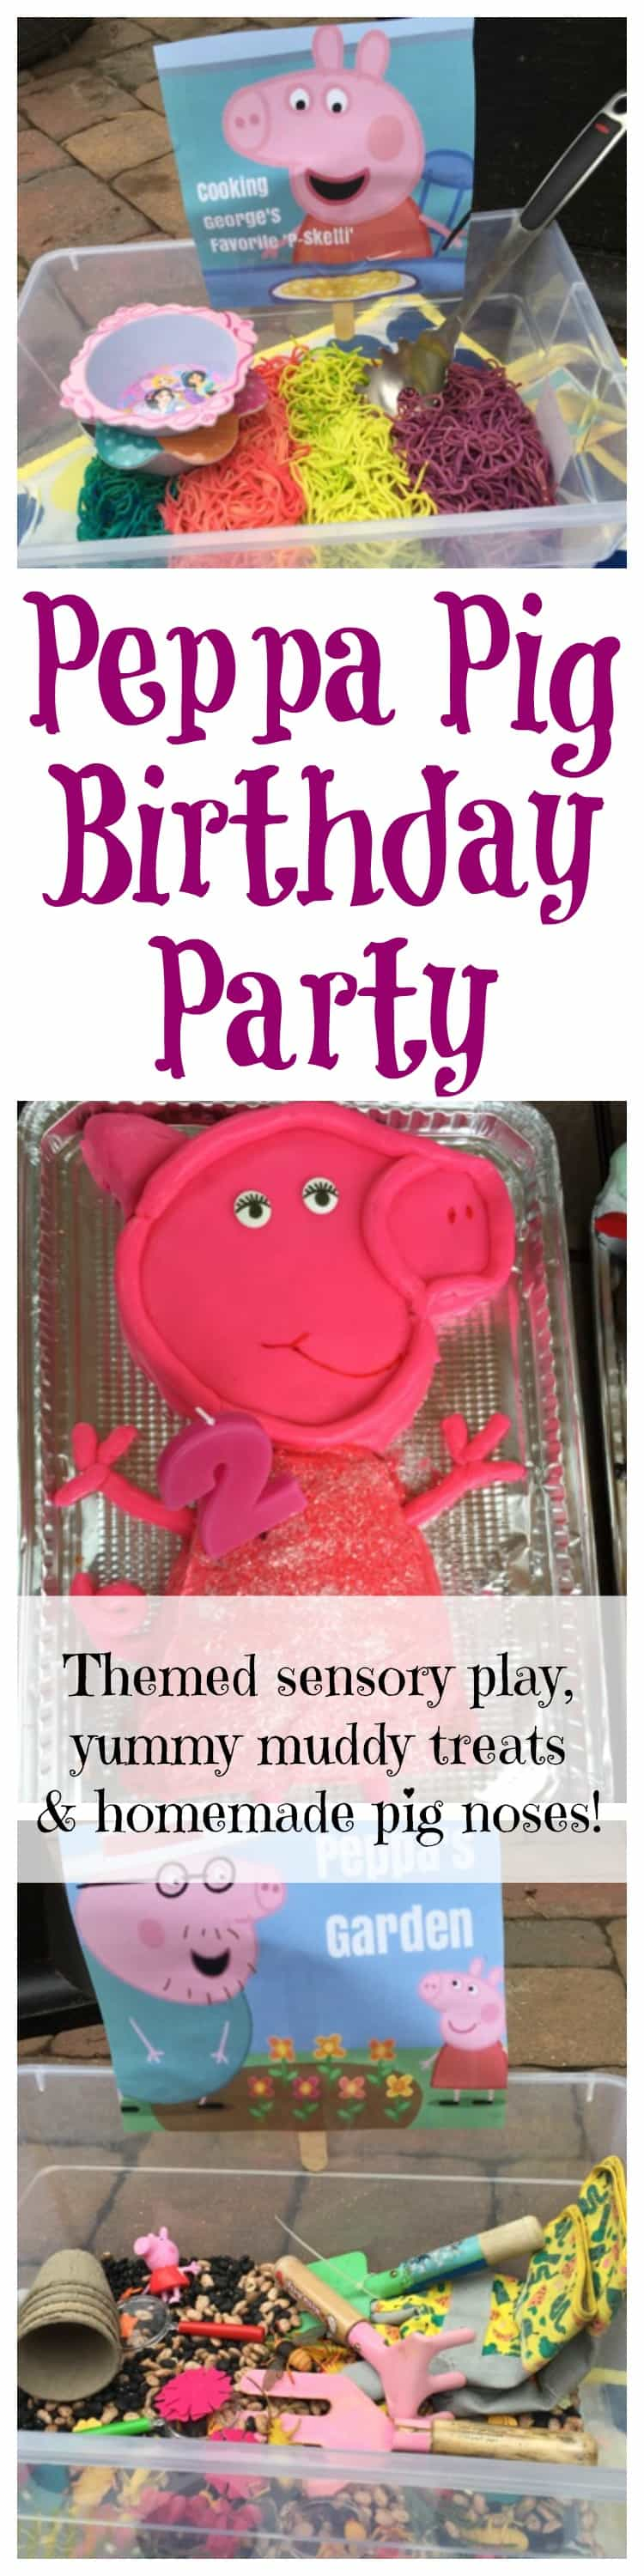 What kid wouldn't love this hands-on Peppa Pig birthday party?? From sensory play to yummy, muddy desserts, your little one will have a birthday to remember